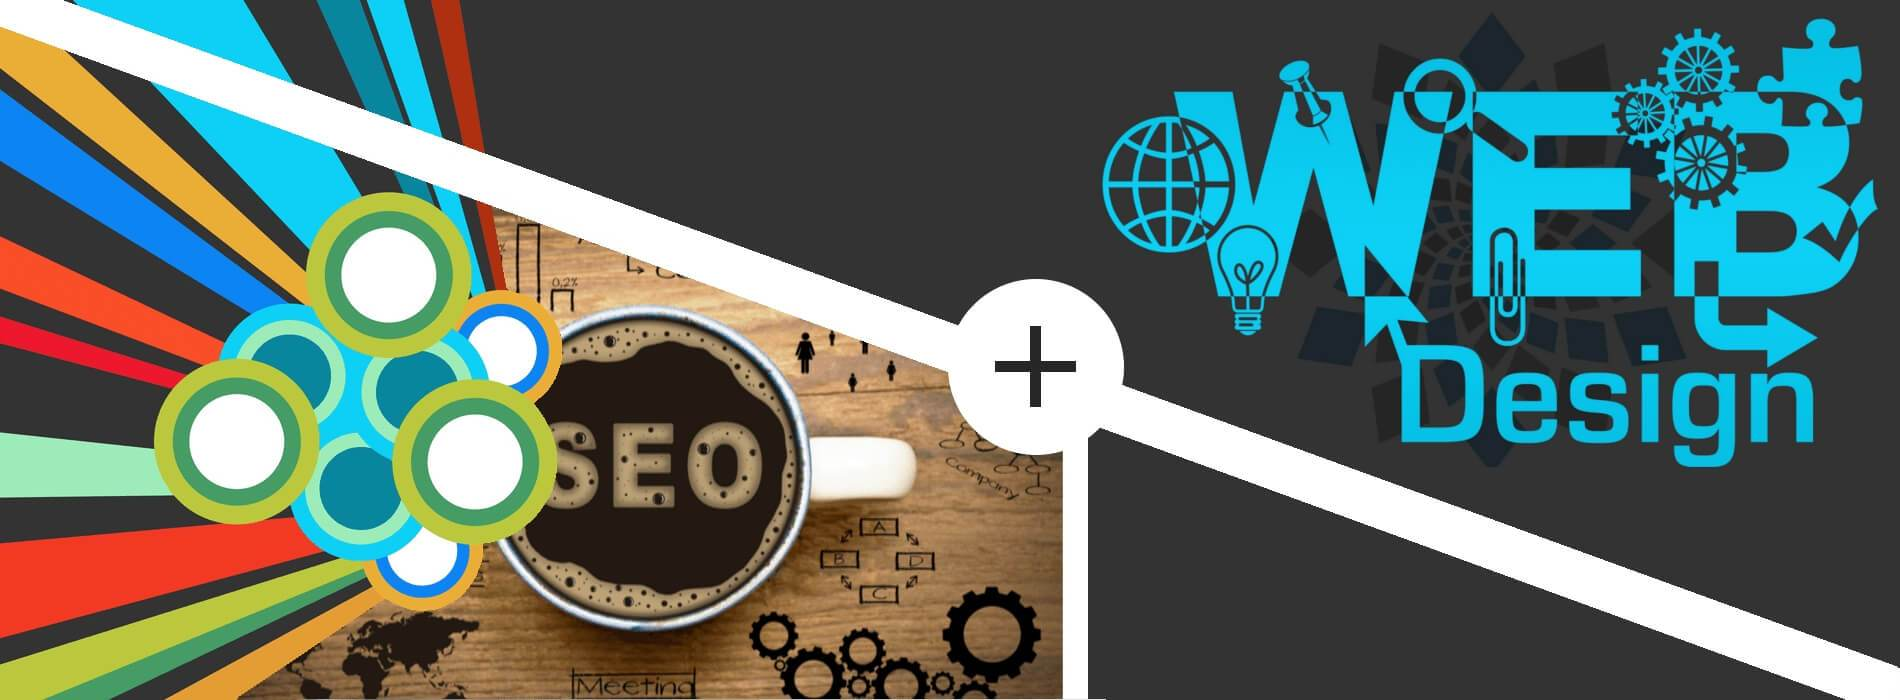 All in One - Webseite und SEO